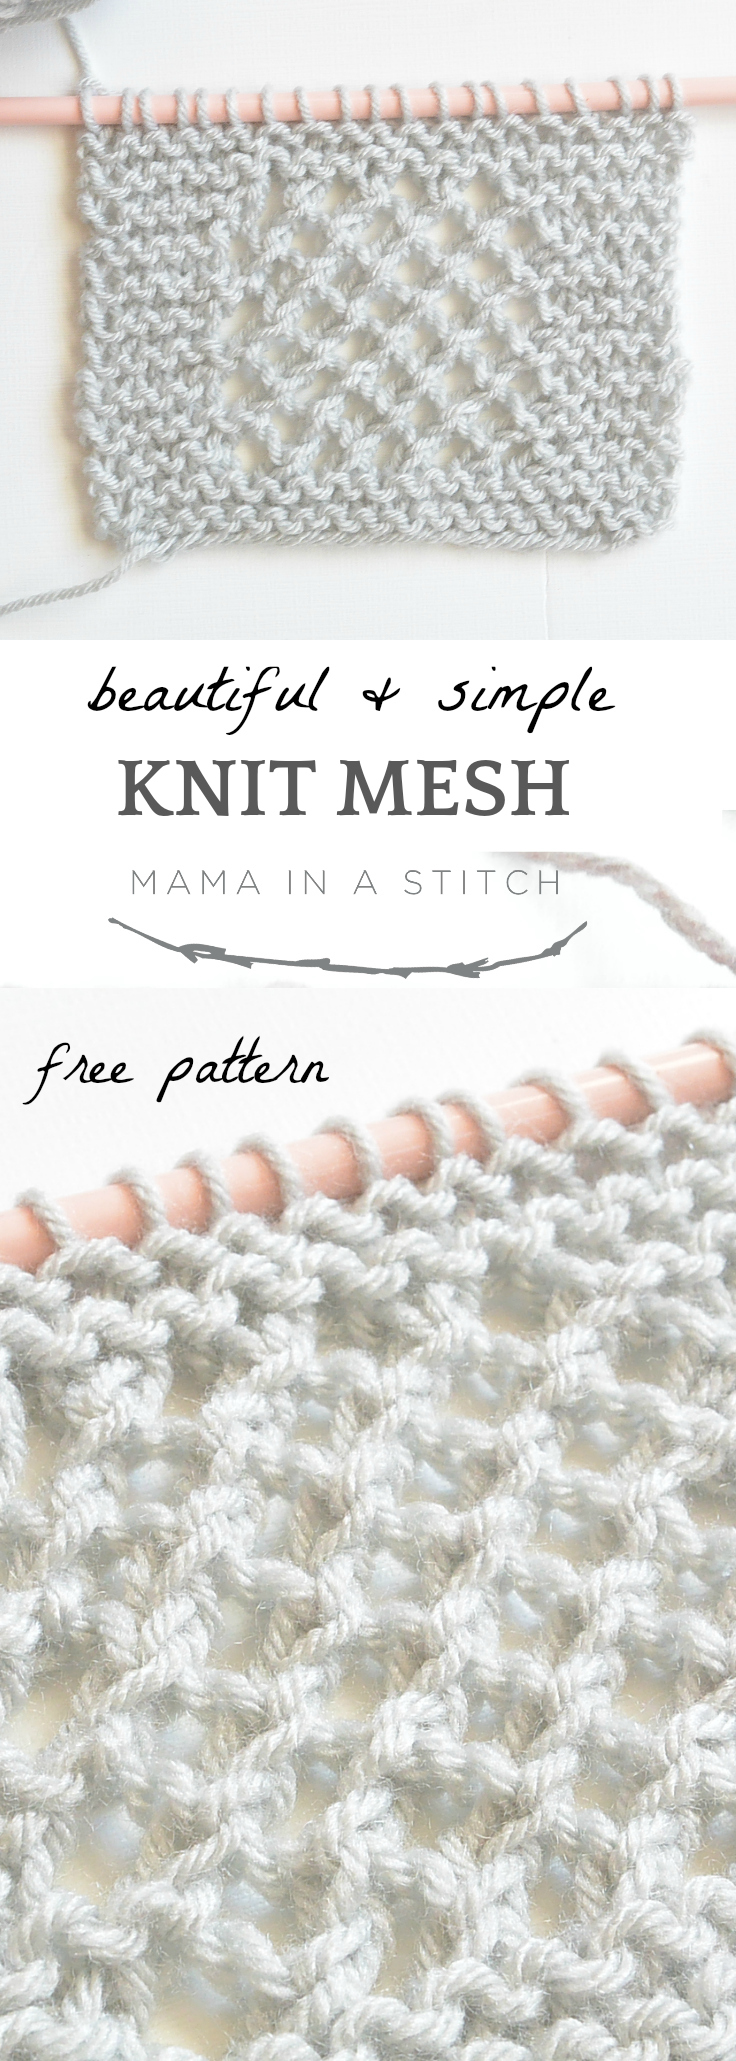 Super easy and free knitting pattern that creates a gorgeous knit mesh stitch!